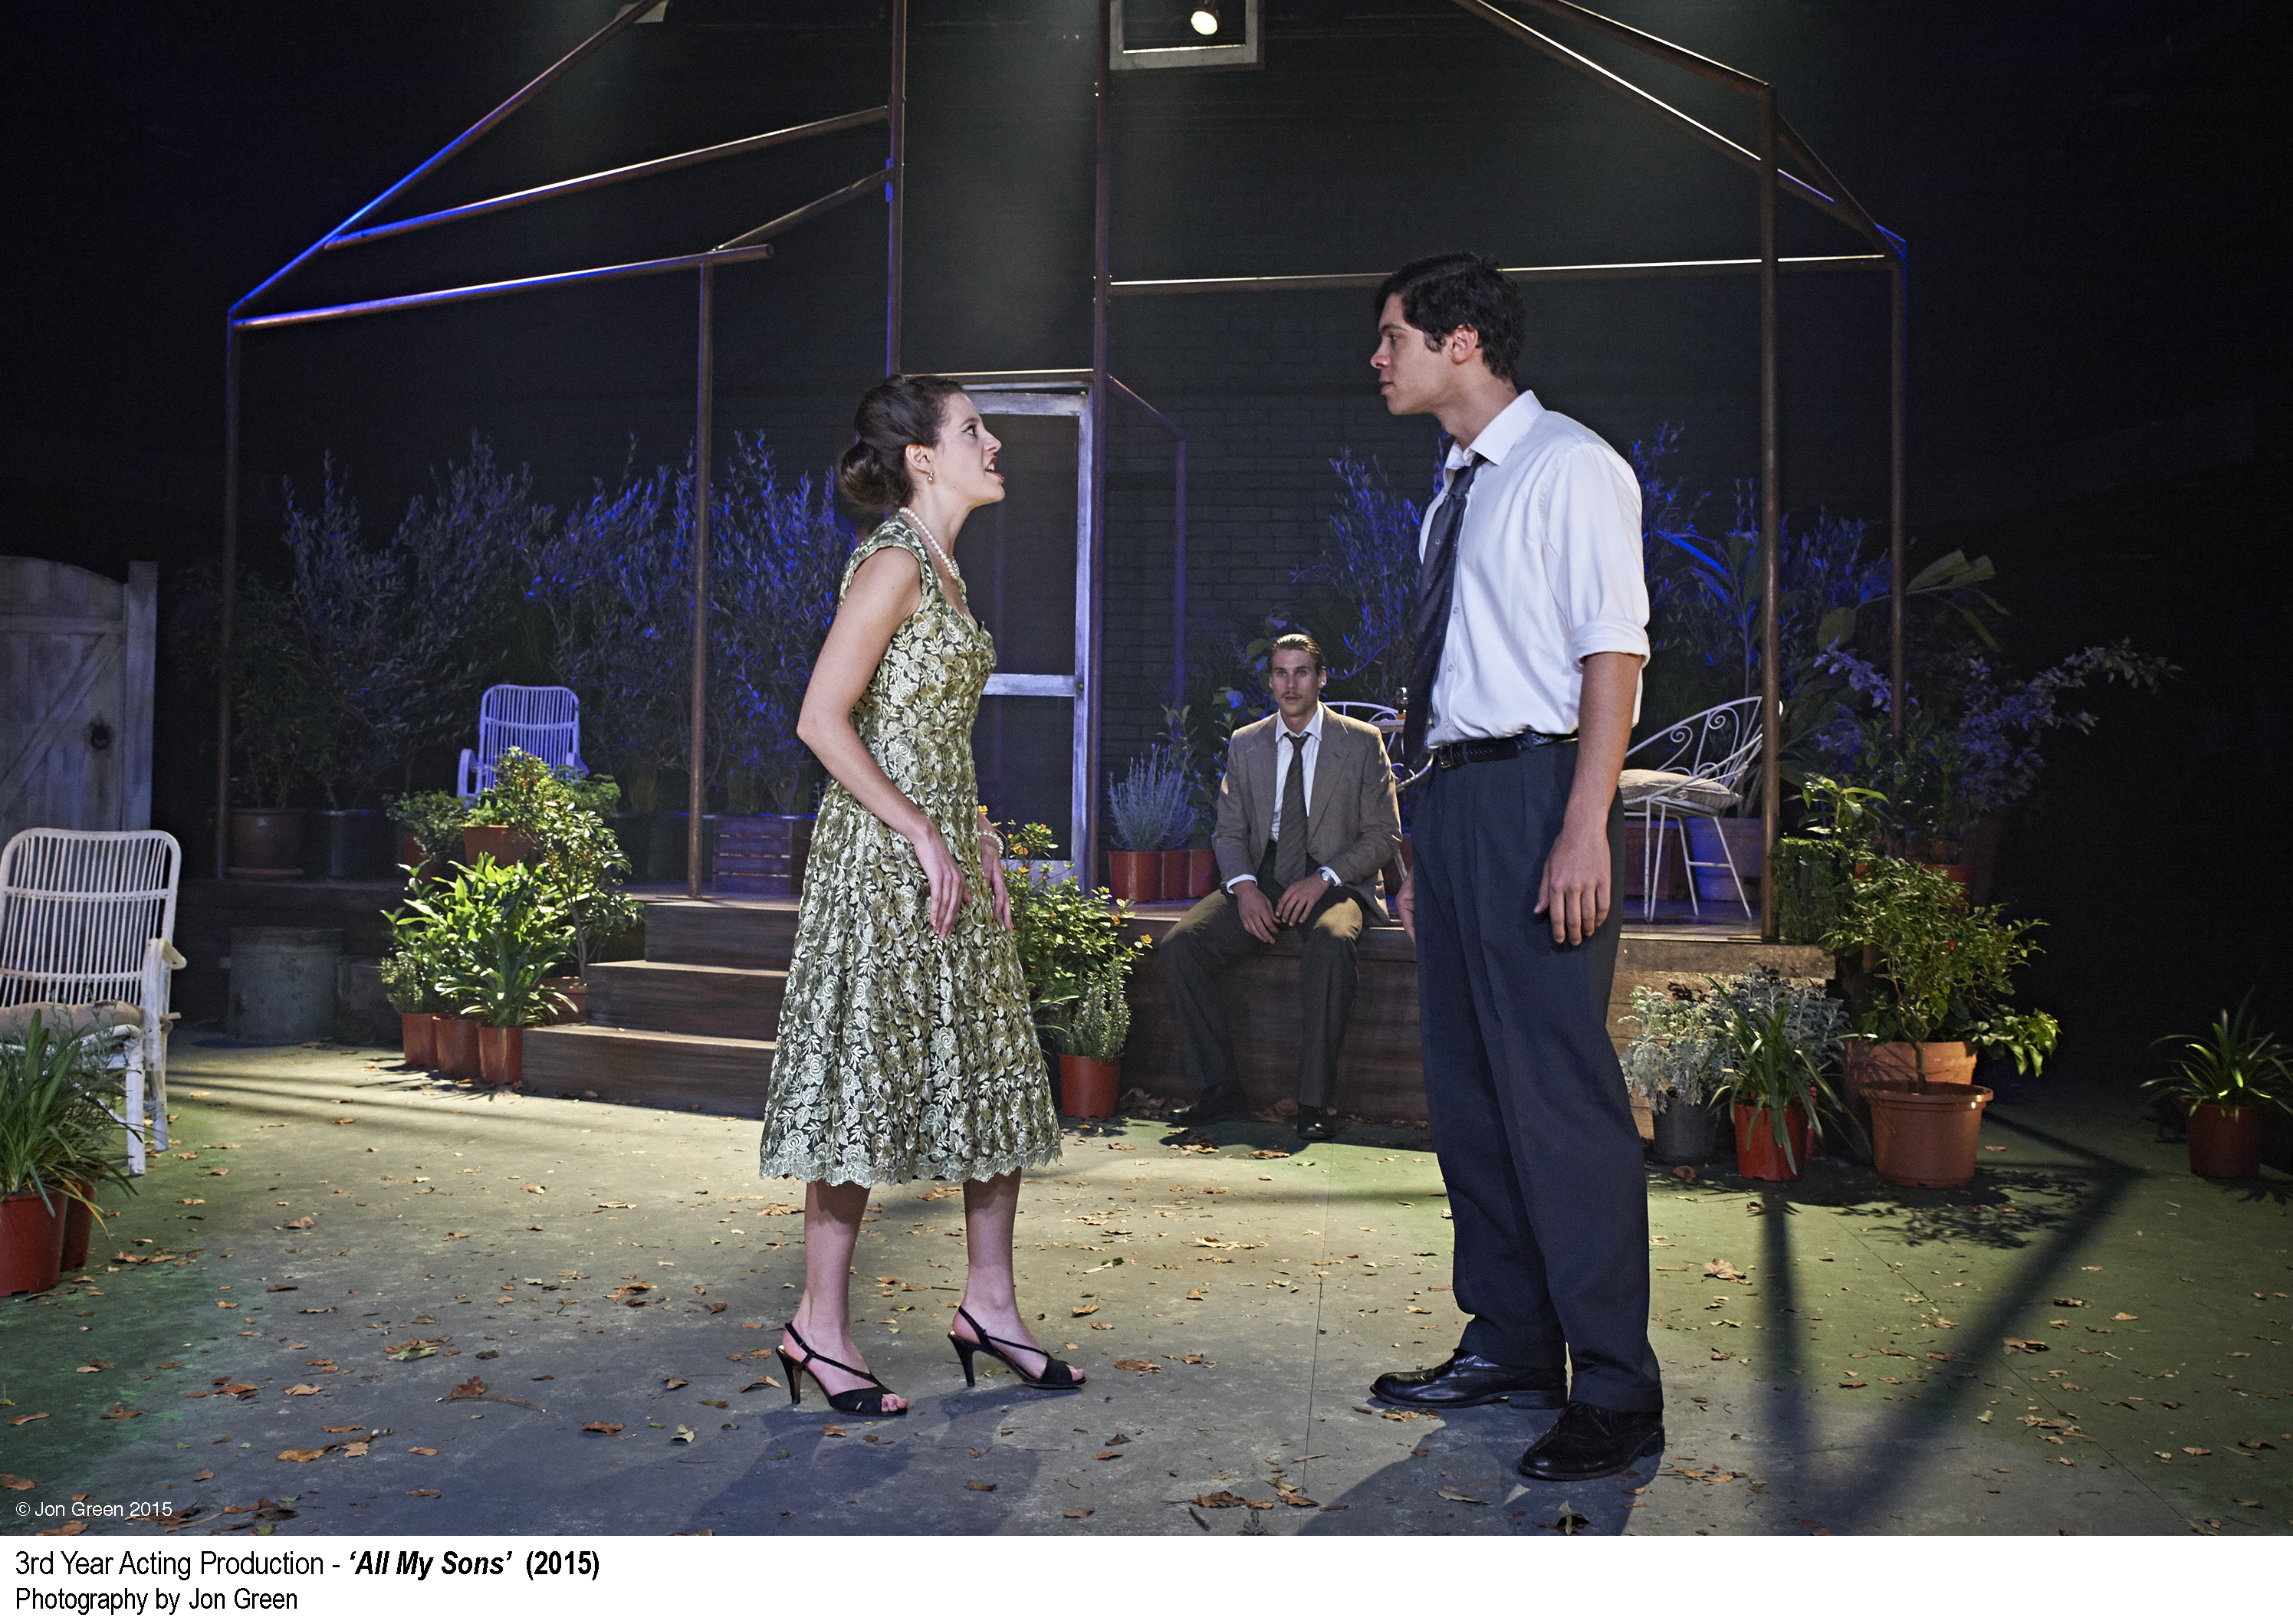 all my sons arthur miller All my sons - ebook written by arthur miller read this book using google play books app on your pc, android, ios devices download for offline reading, highlight, bookmark or take notes while you read all my sons.